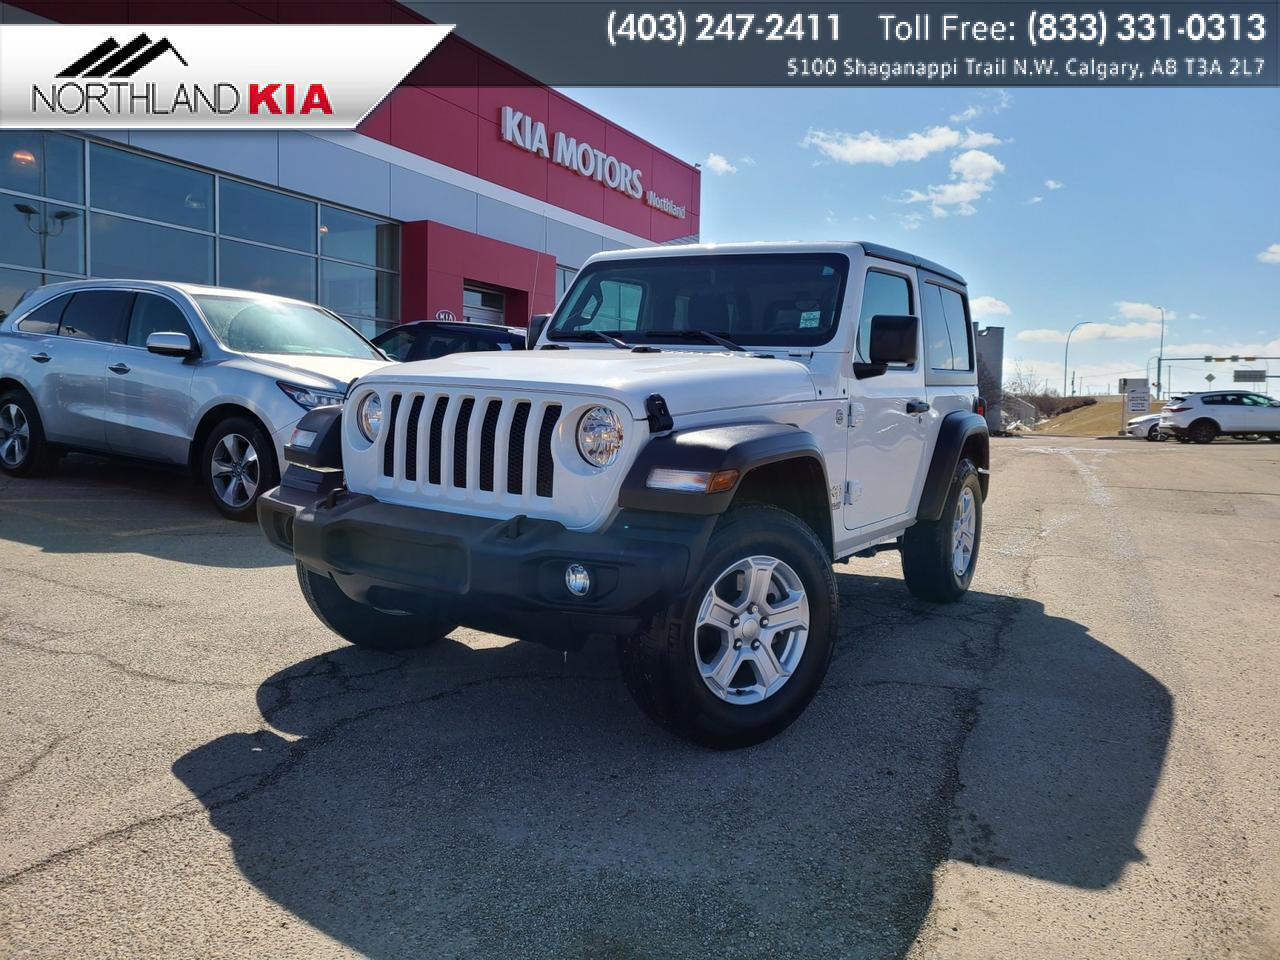 2018 Jeep Wrangler Sport 4X4, 3.6L, HEATED SEATS, BACKUP CAMERA Calgary AB